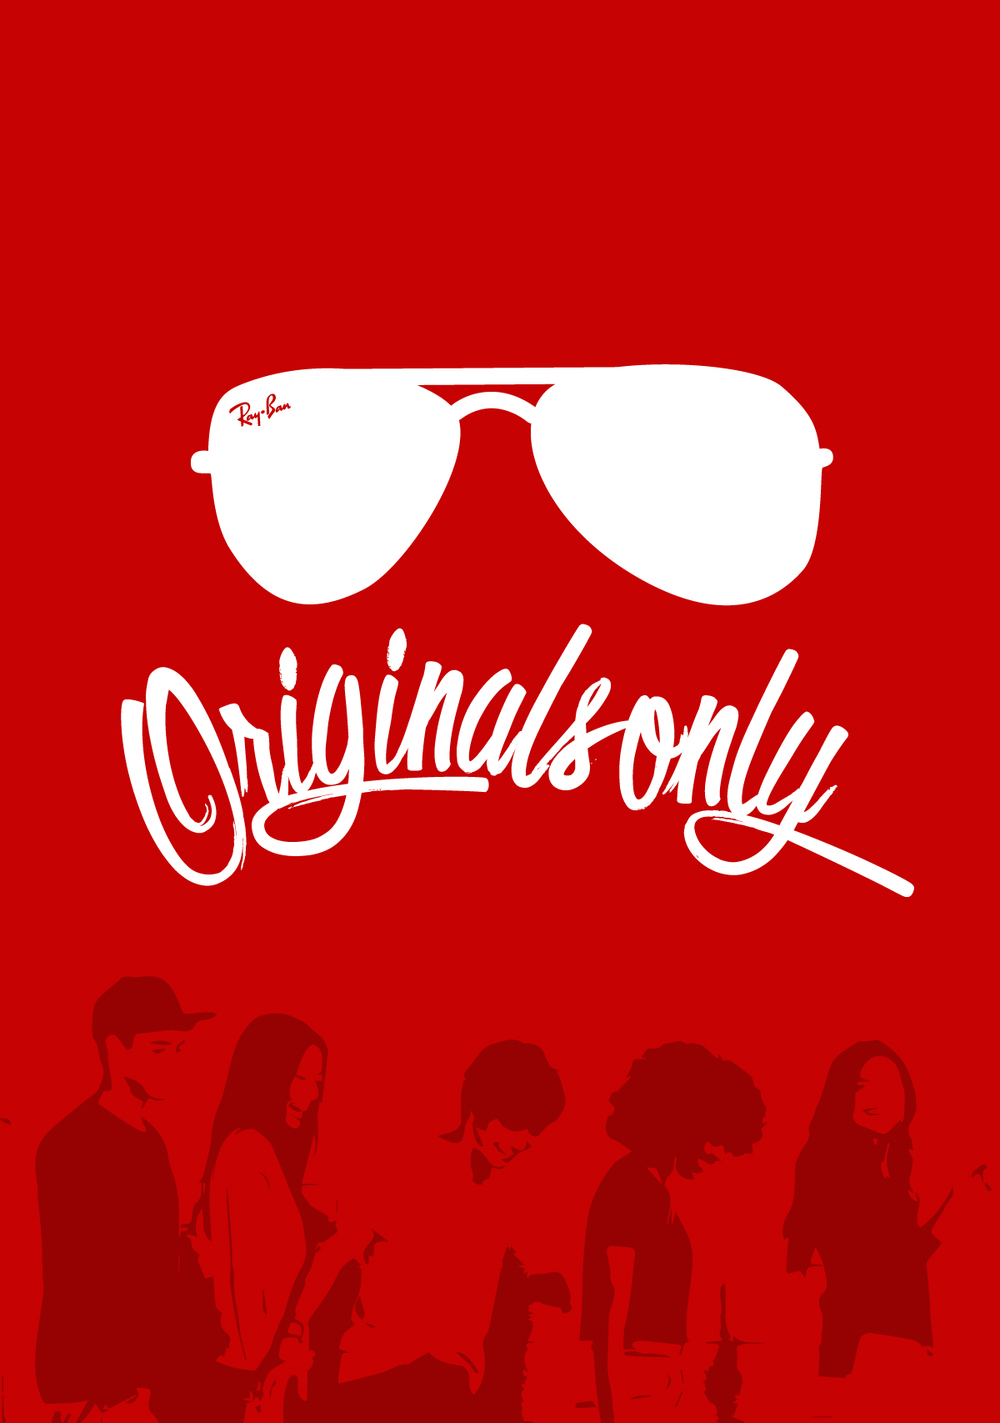 ray-bans-original-logo-cover.jpg